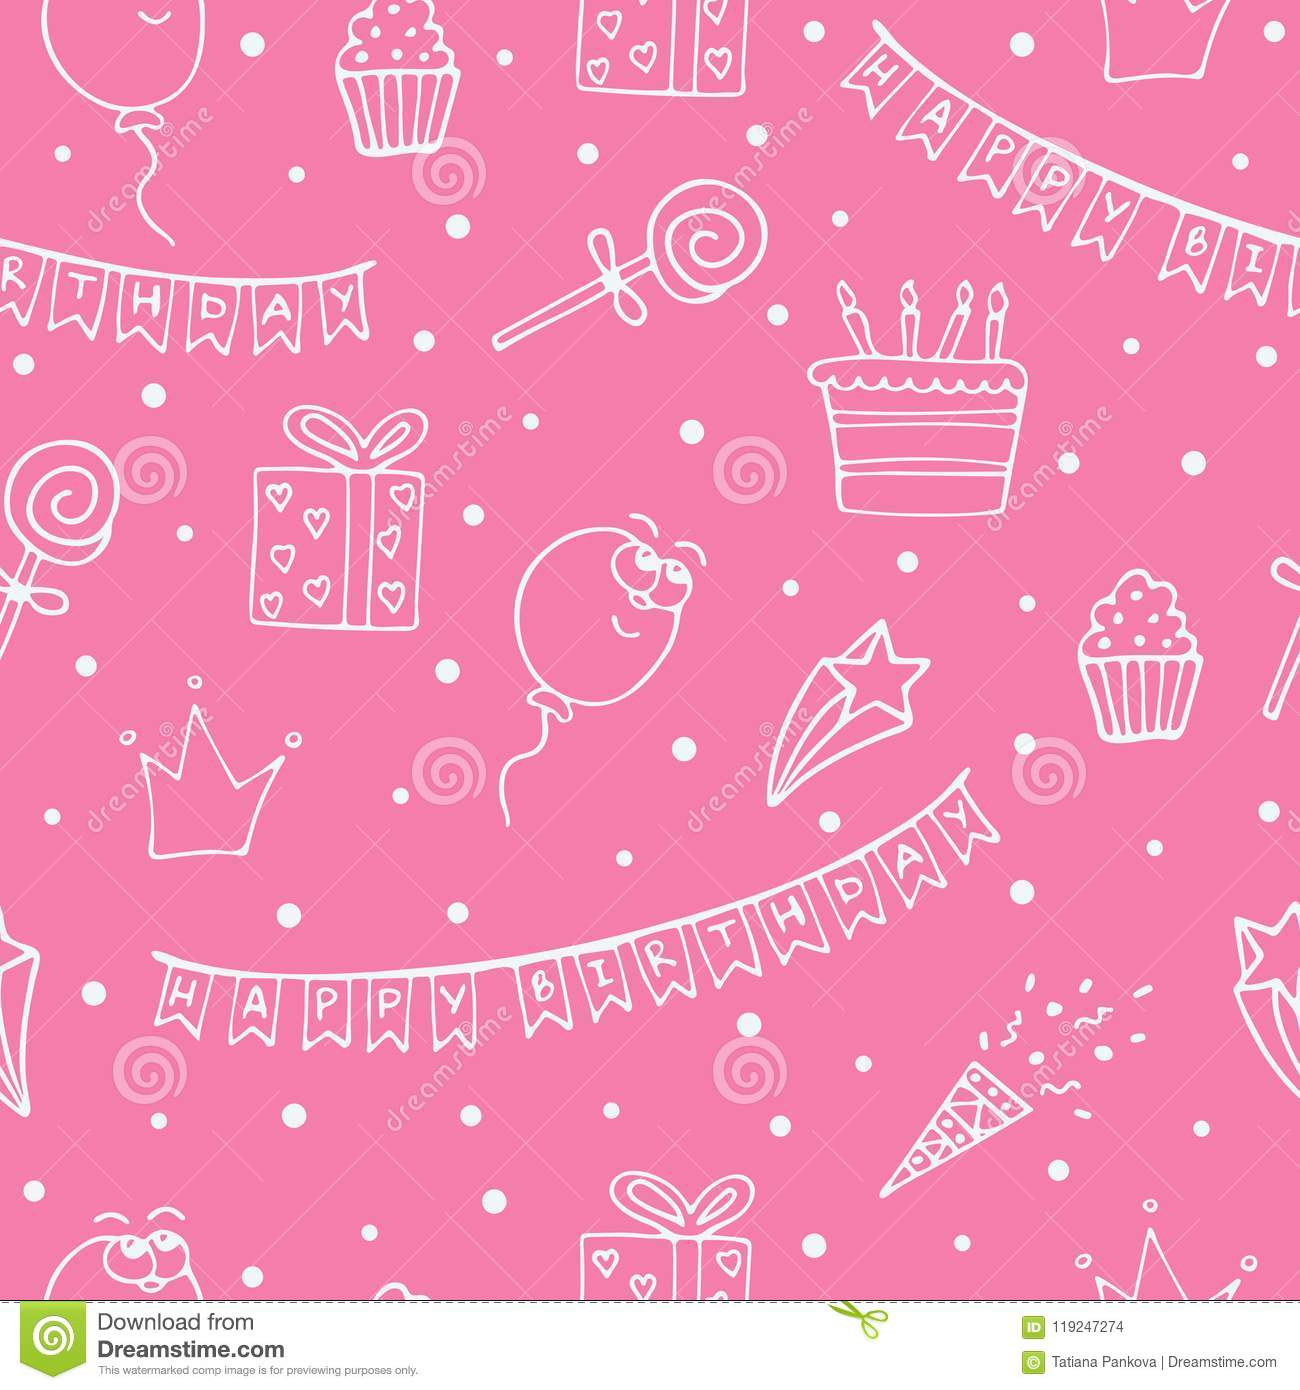 Pink seamless pattern for a birthday with white drawings